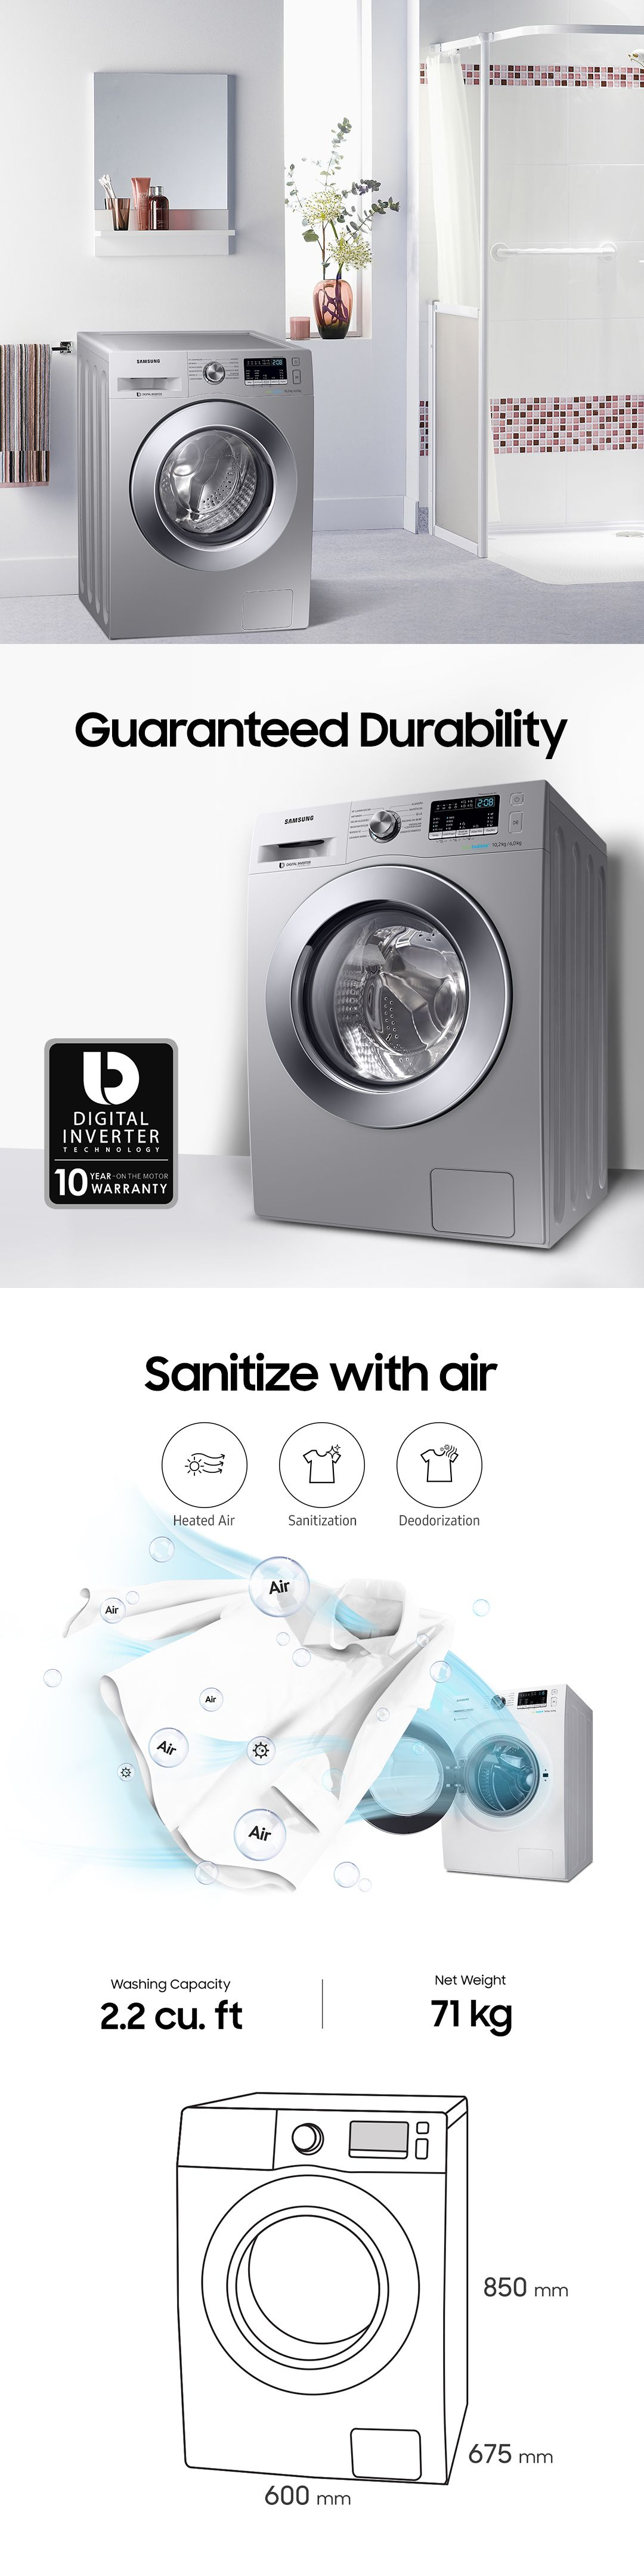 A Digital Inverter Motor Delivers Superior Energy Efficiency Minimal Noies And Exceptionally Long Samsung Washing Machine Energy Efficiency Samsung Appliances